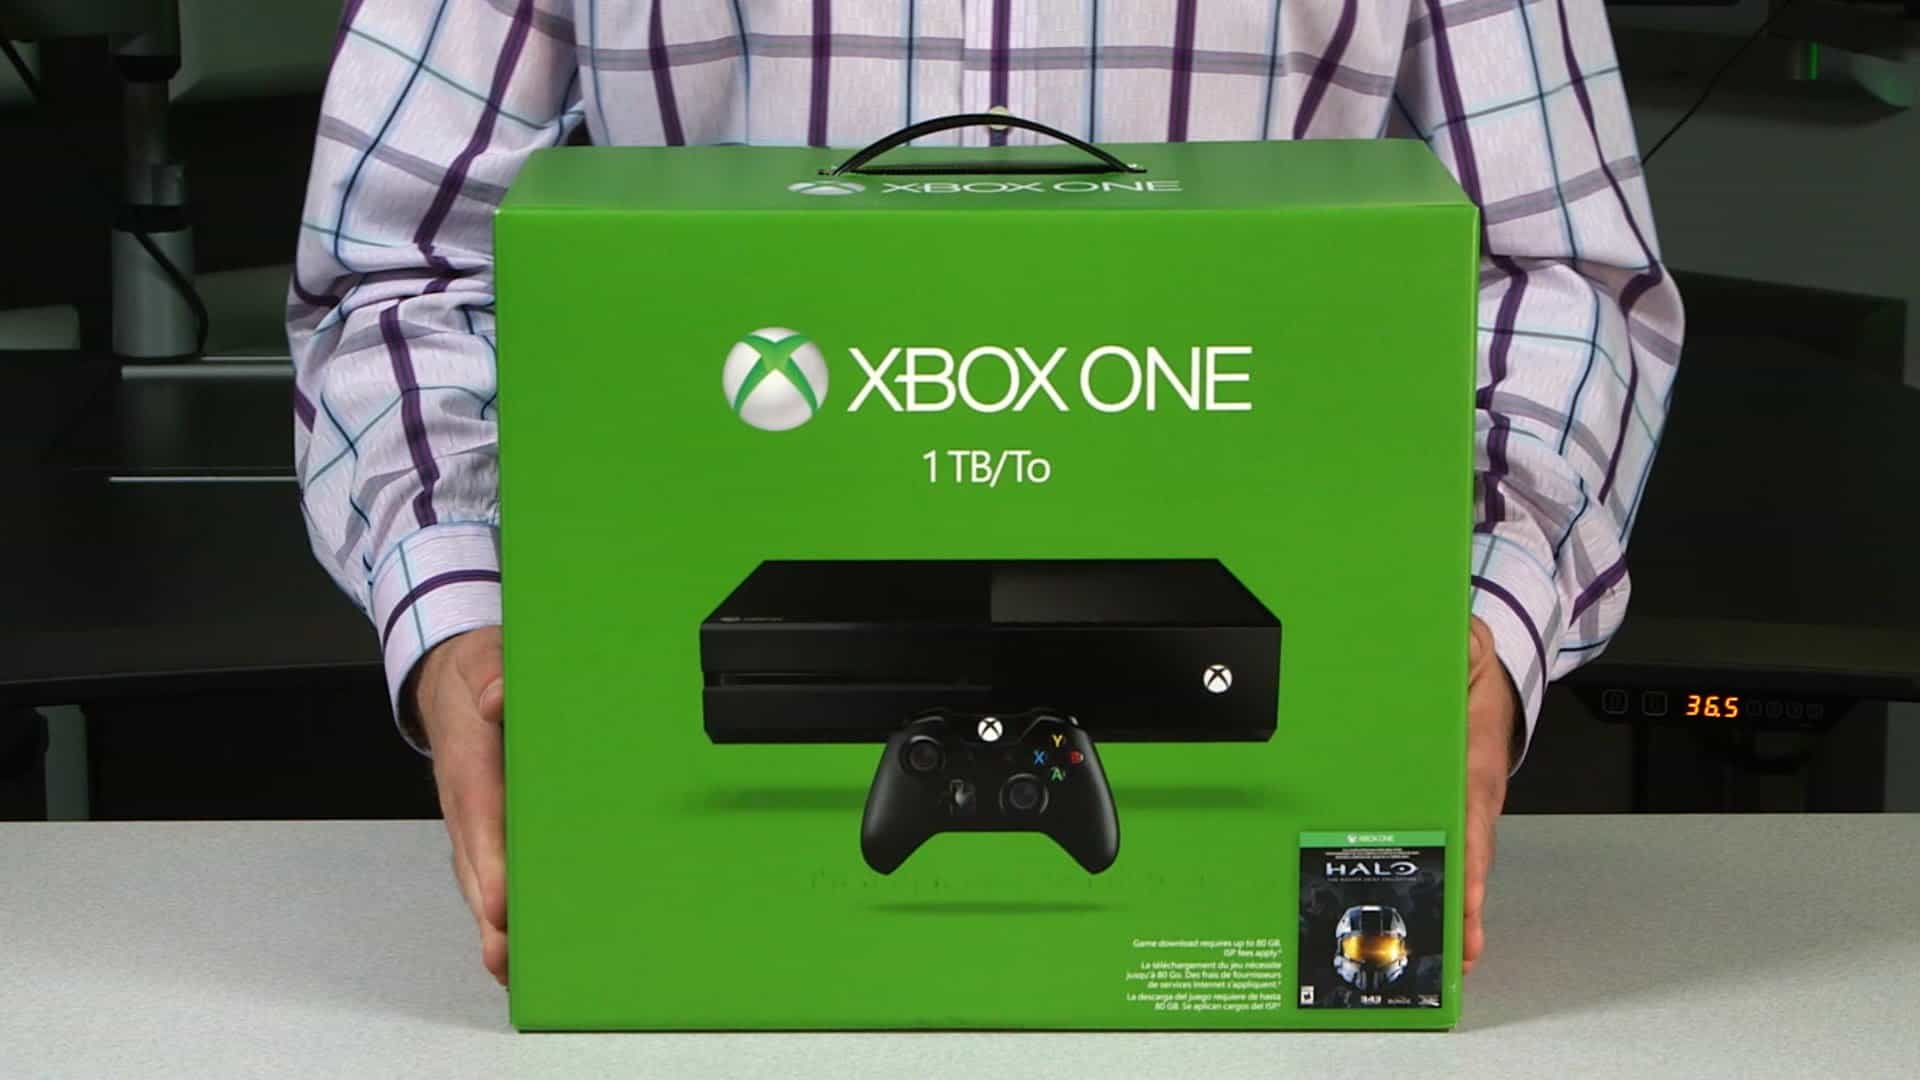 how to hook up xbox one controller to console How to pair an xbox one controller with the nvidia shield tv to connect wirelessly you need to have the latest version of the controller that to date if you 're not already using the same controller on an xbox one console pump up the party with the ue boom 2 wireless speaker at its lowest price ever.